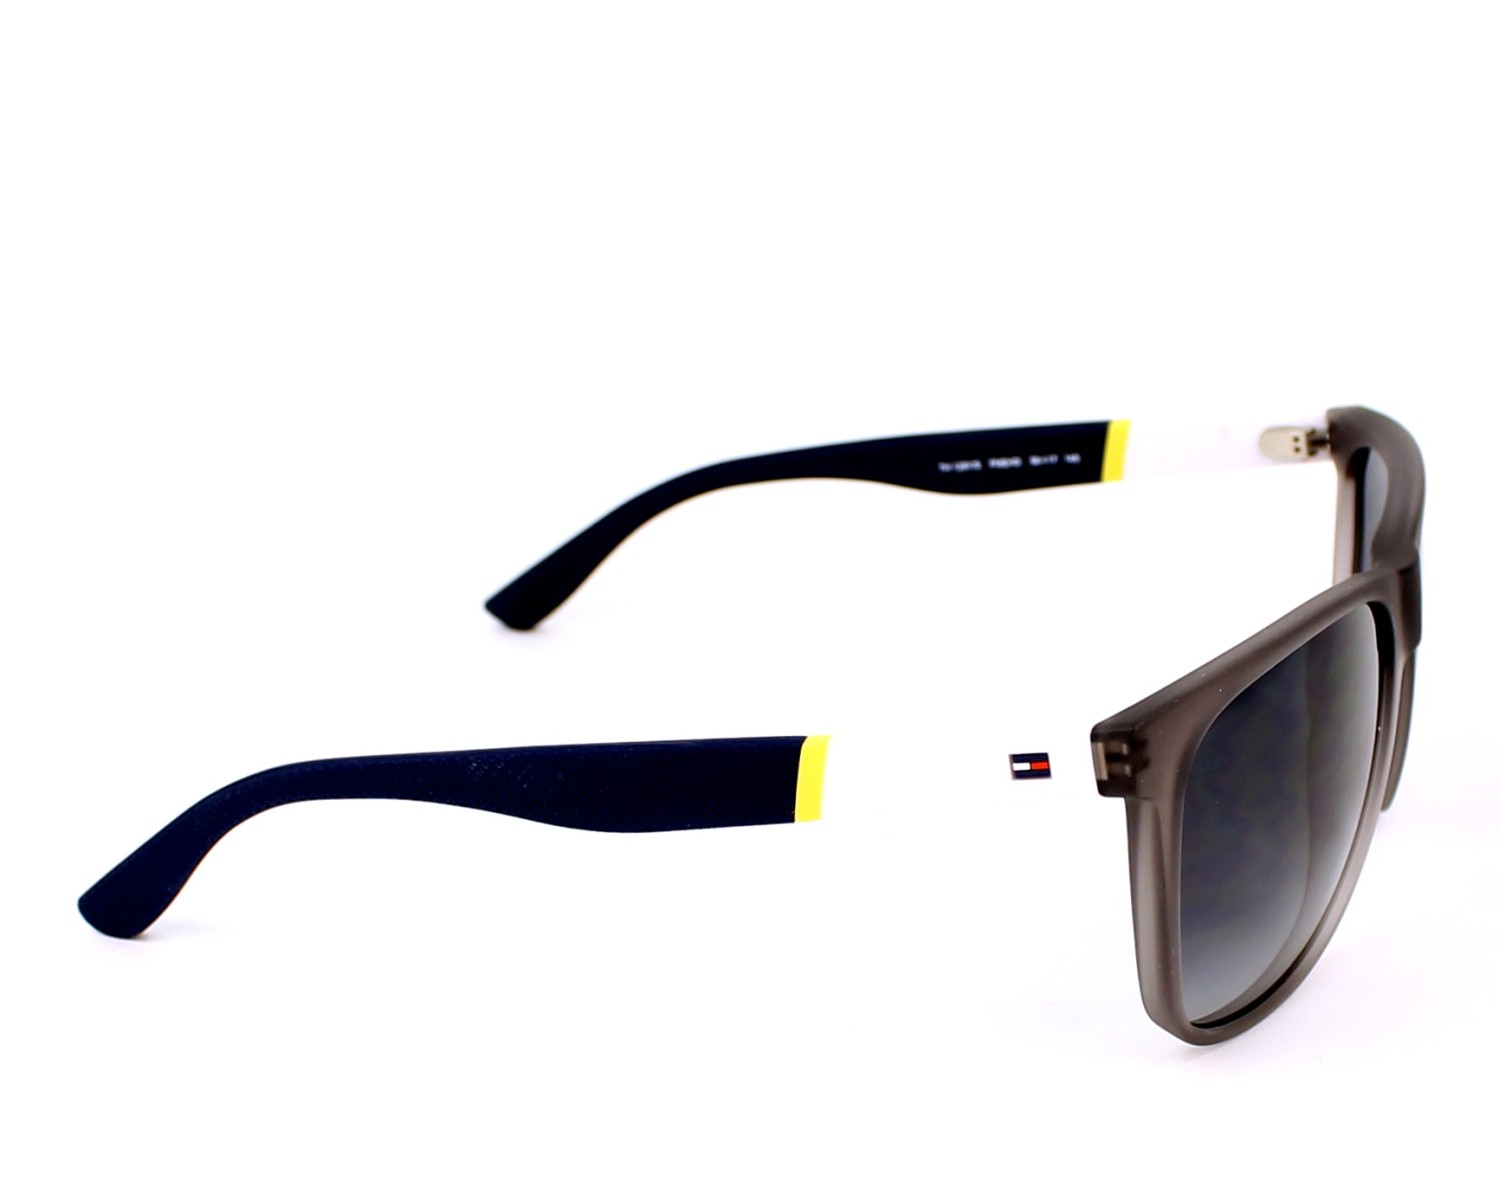 ade1fc6f5c63f Sunglasses Tommy Hilfiger TH-1281-S FME HD - Grey White side view